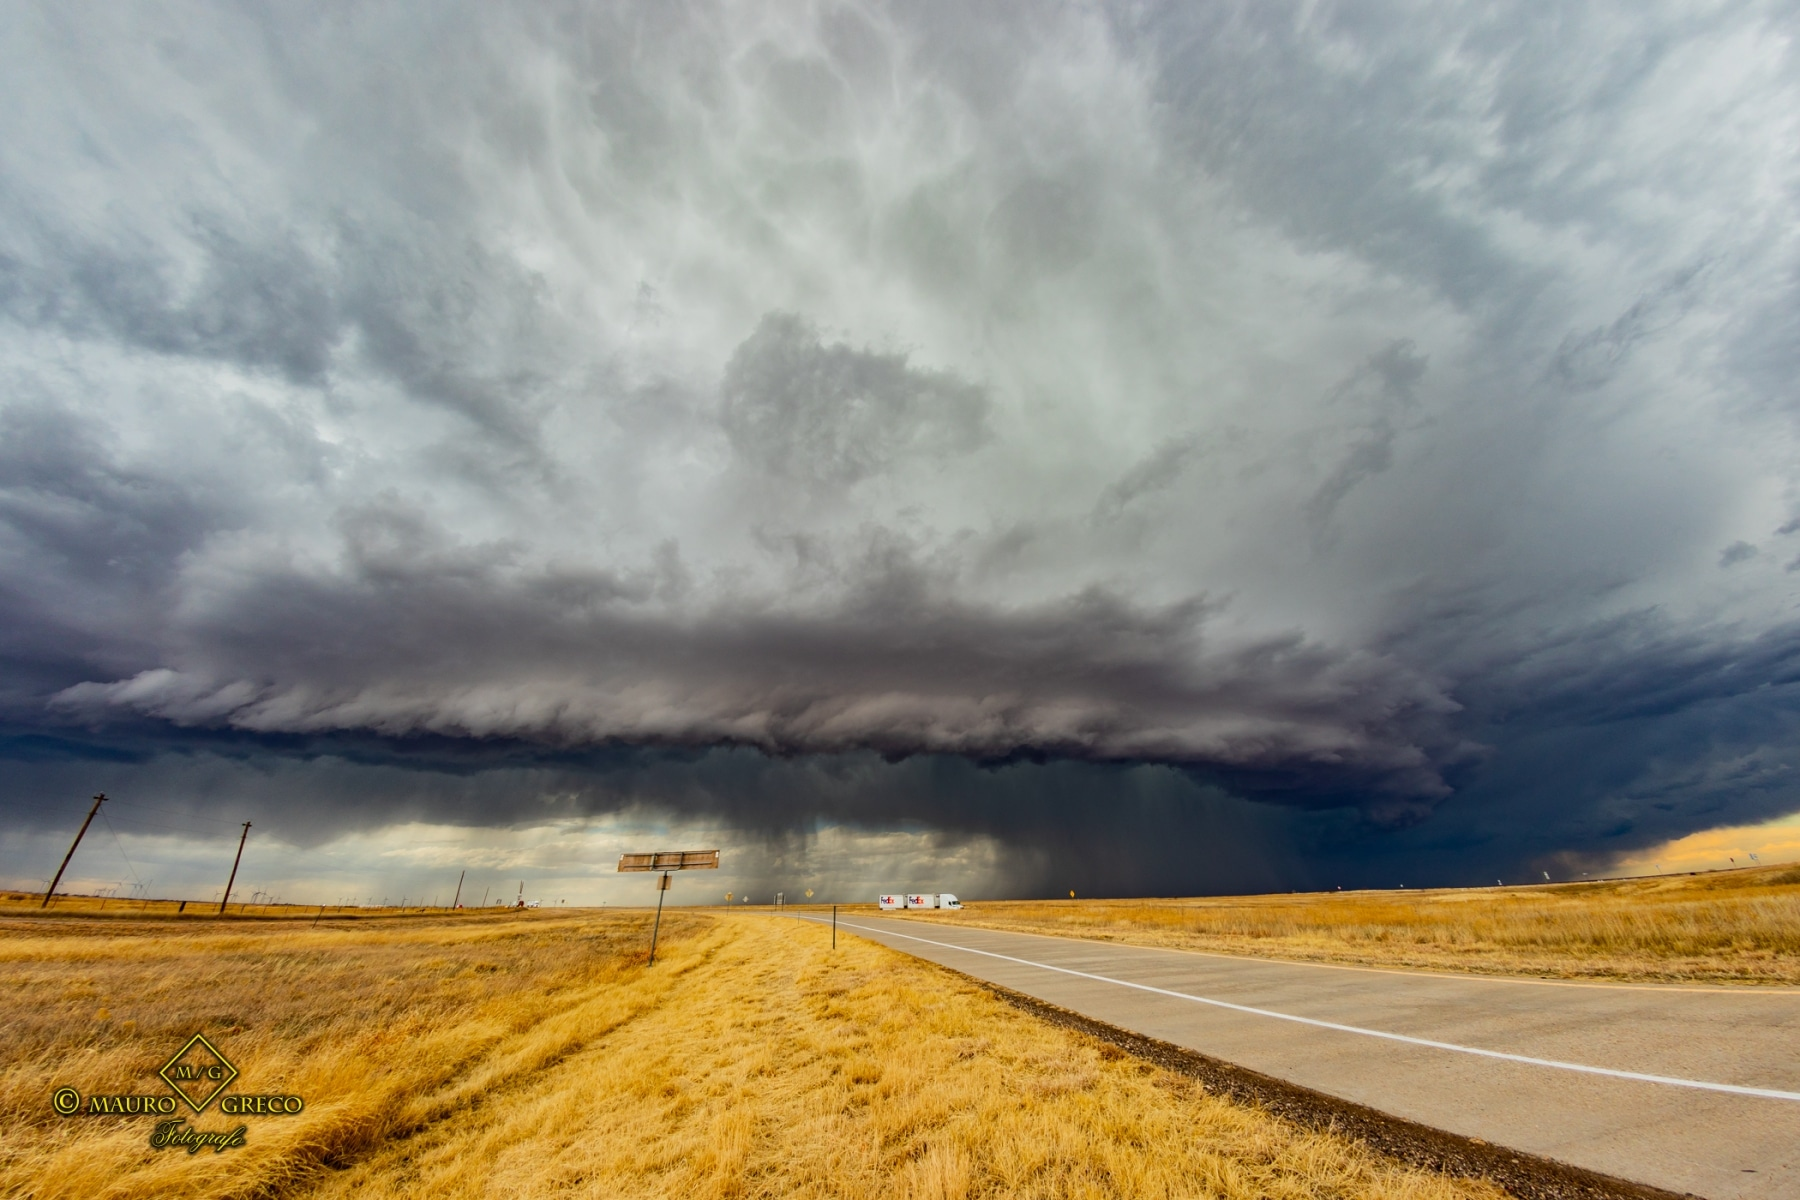 February 23 2020 Groom Texas Supercell - Tornado Tour StormWind